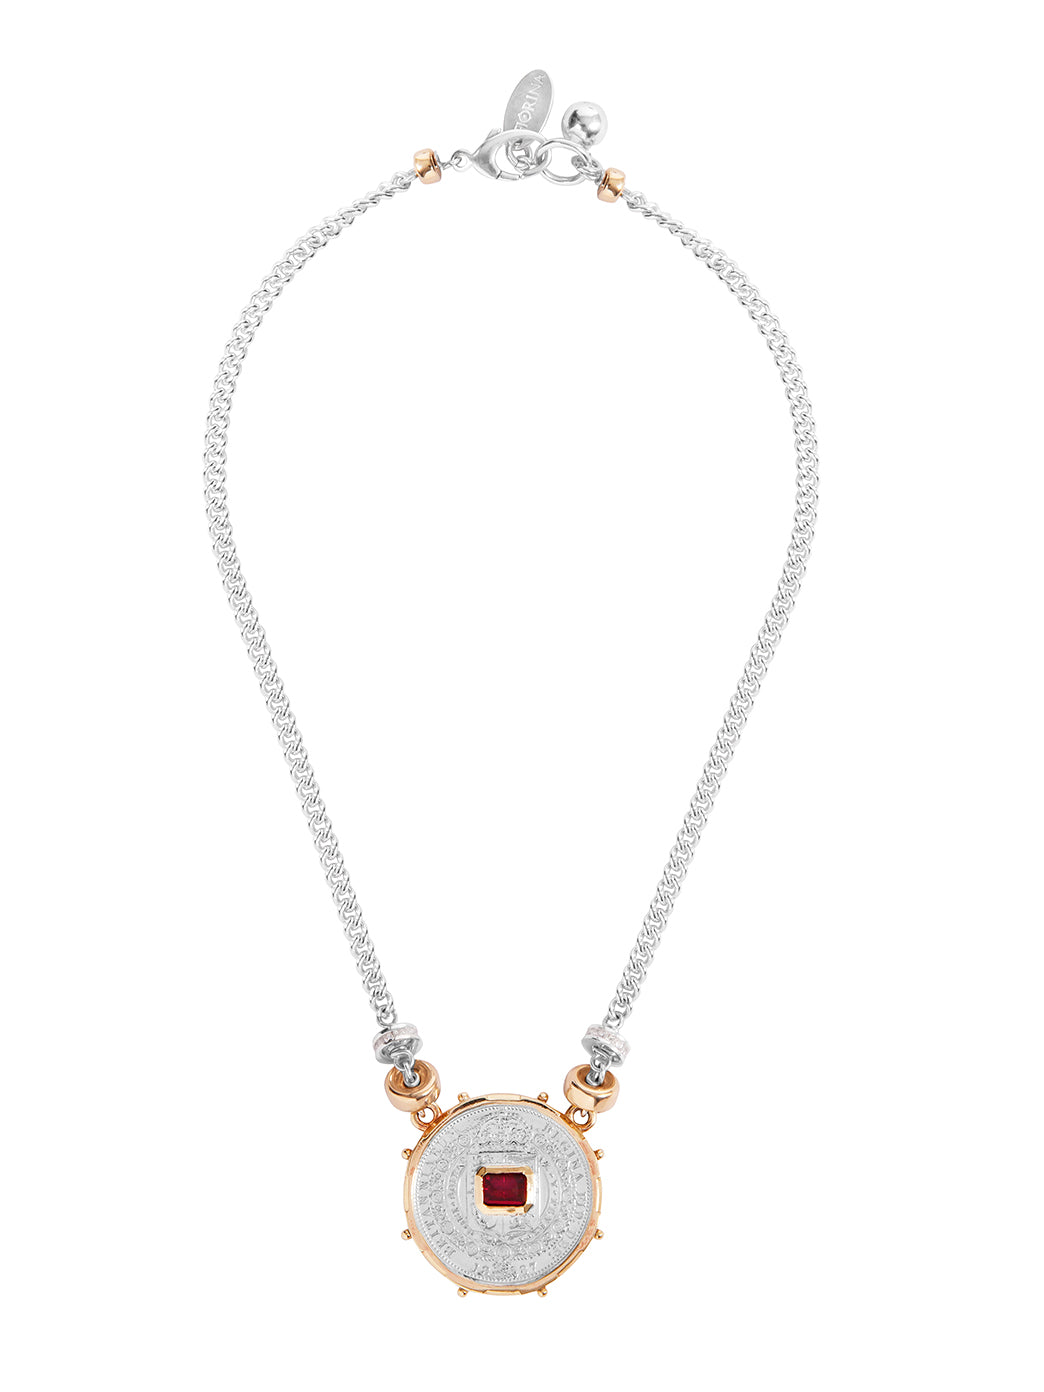 Fiorina Jewellery Medium Jewel Gem Necklace Ruby